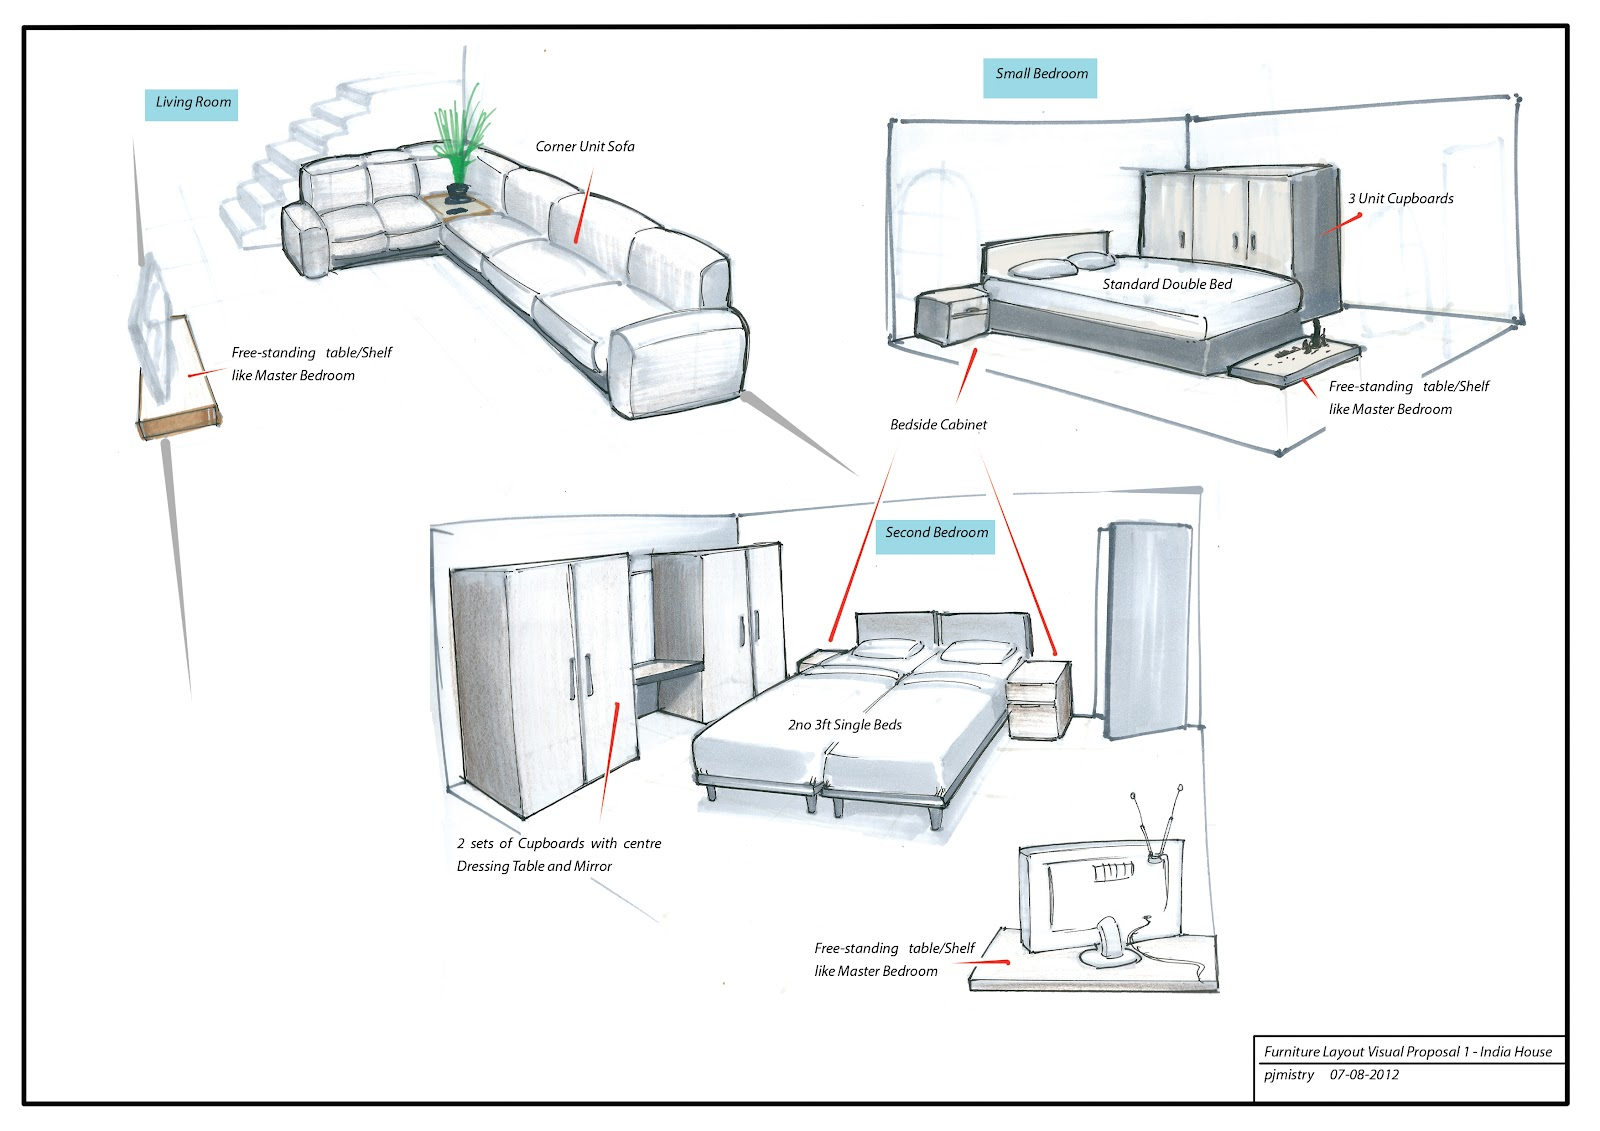 Furniture Design Sketch : Furniture Layout Visuals for New Family Home in India, Navsari